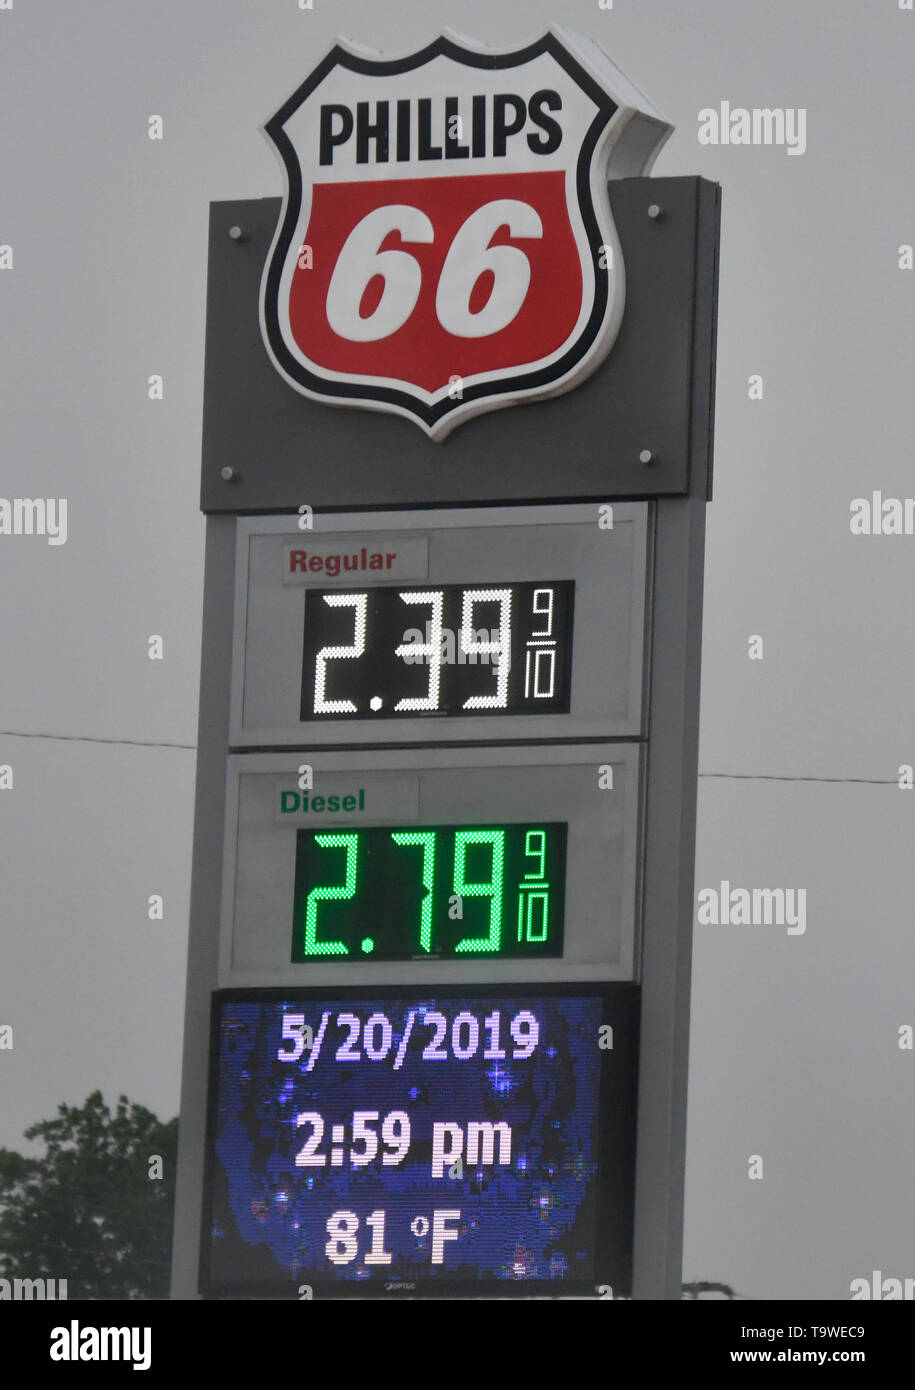 Storm chaser enjoy the cheap gas prices in TX and OK as severe storms, including tornadoes, are predicted in the Southern Plains through late Monday May 20, 2019. Tornado watches in effect in the Texas Panhandle and Oklahoma expire before midnight. Then, flooding is expected to become the major concern overnight from Oklahoma City to Tulsa and to the northeast. The tornado outbreak has not been as severe as feared as twisters have mostly avoided population centers. Photo by Gene Blevins/ZumaPress Credit: Gene Blevins/ZUMA Wire/Alamy Live News - Stock Image